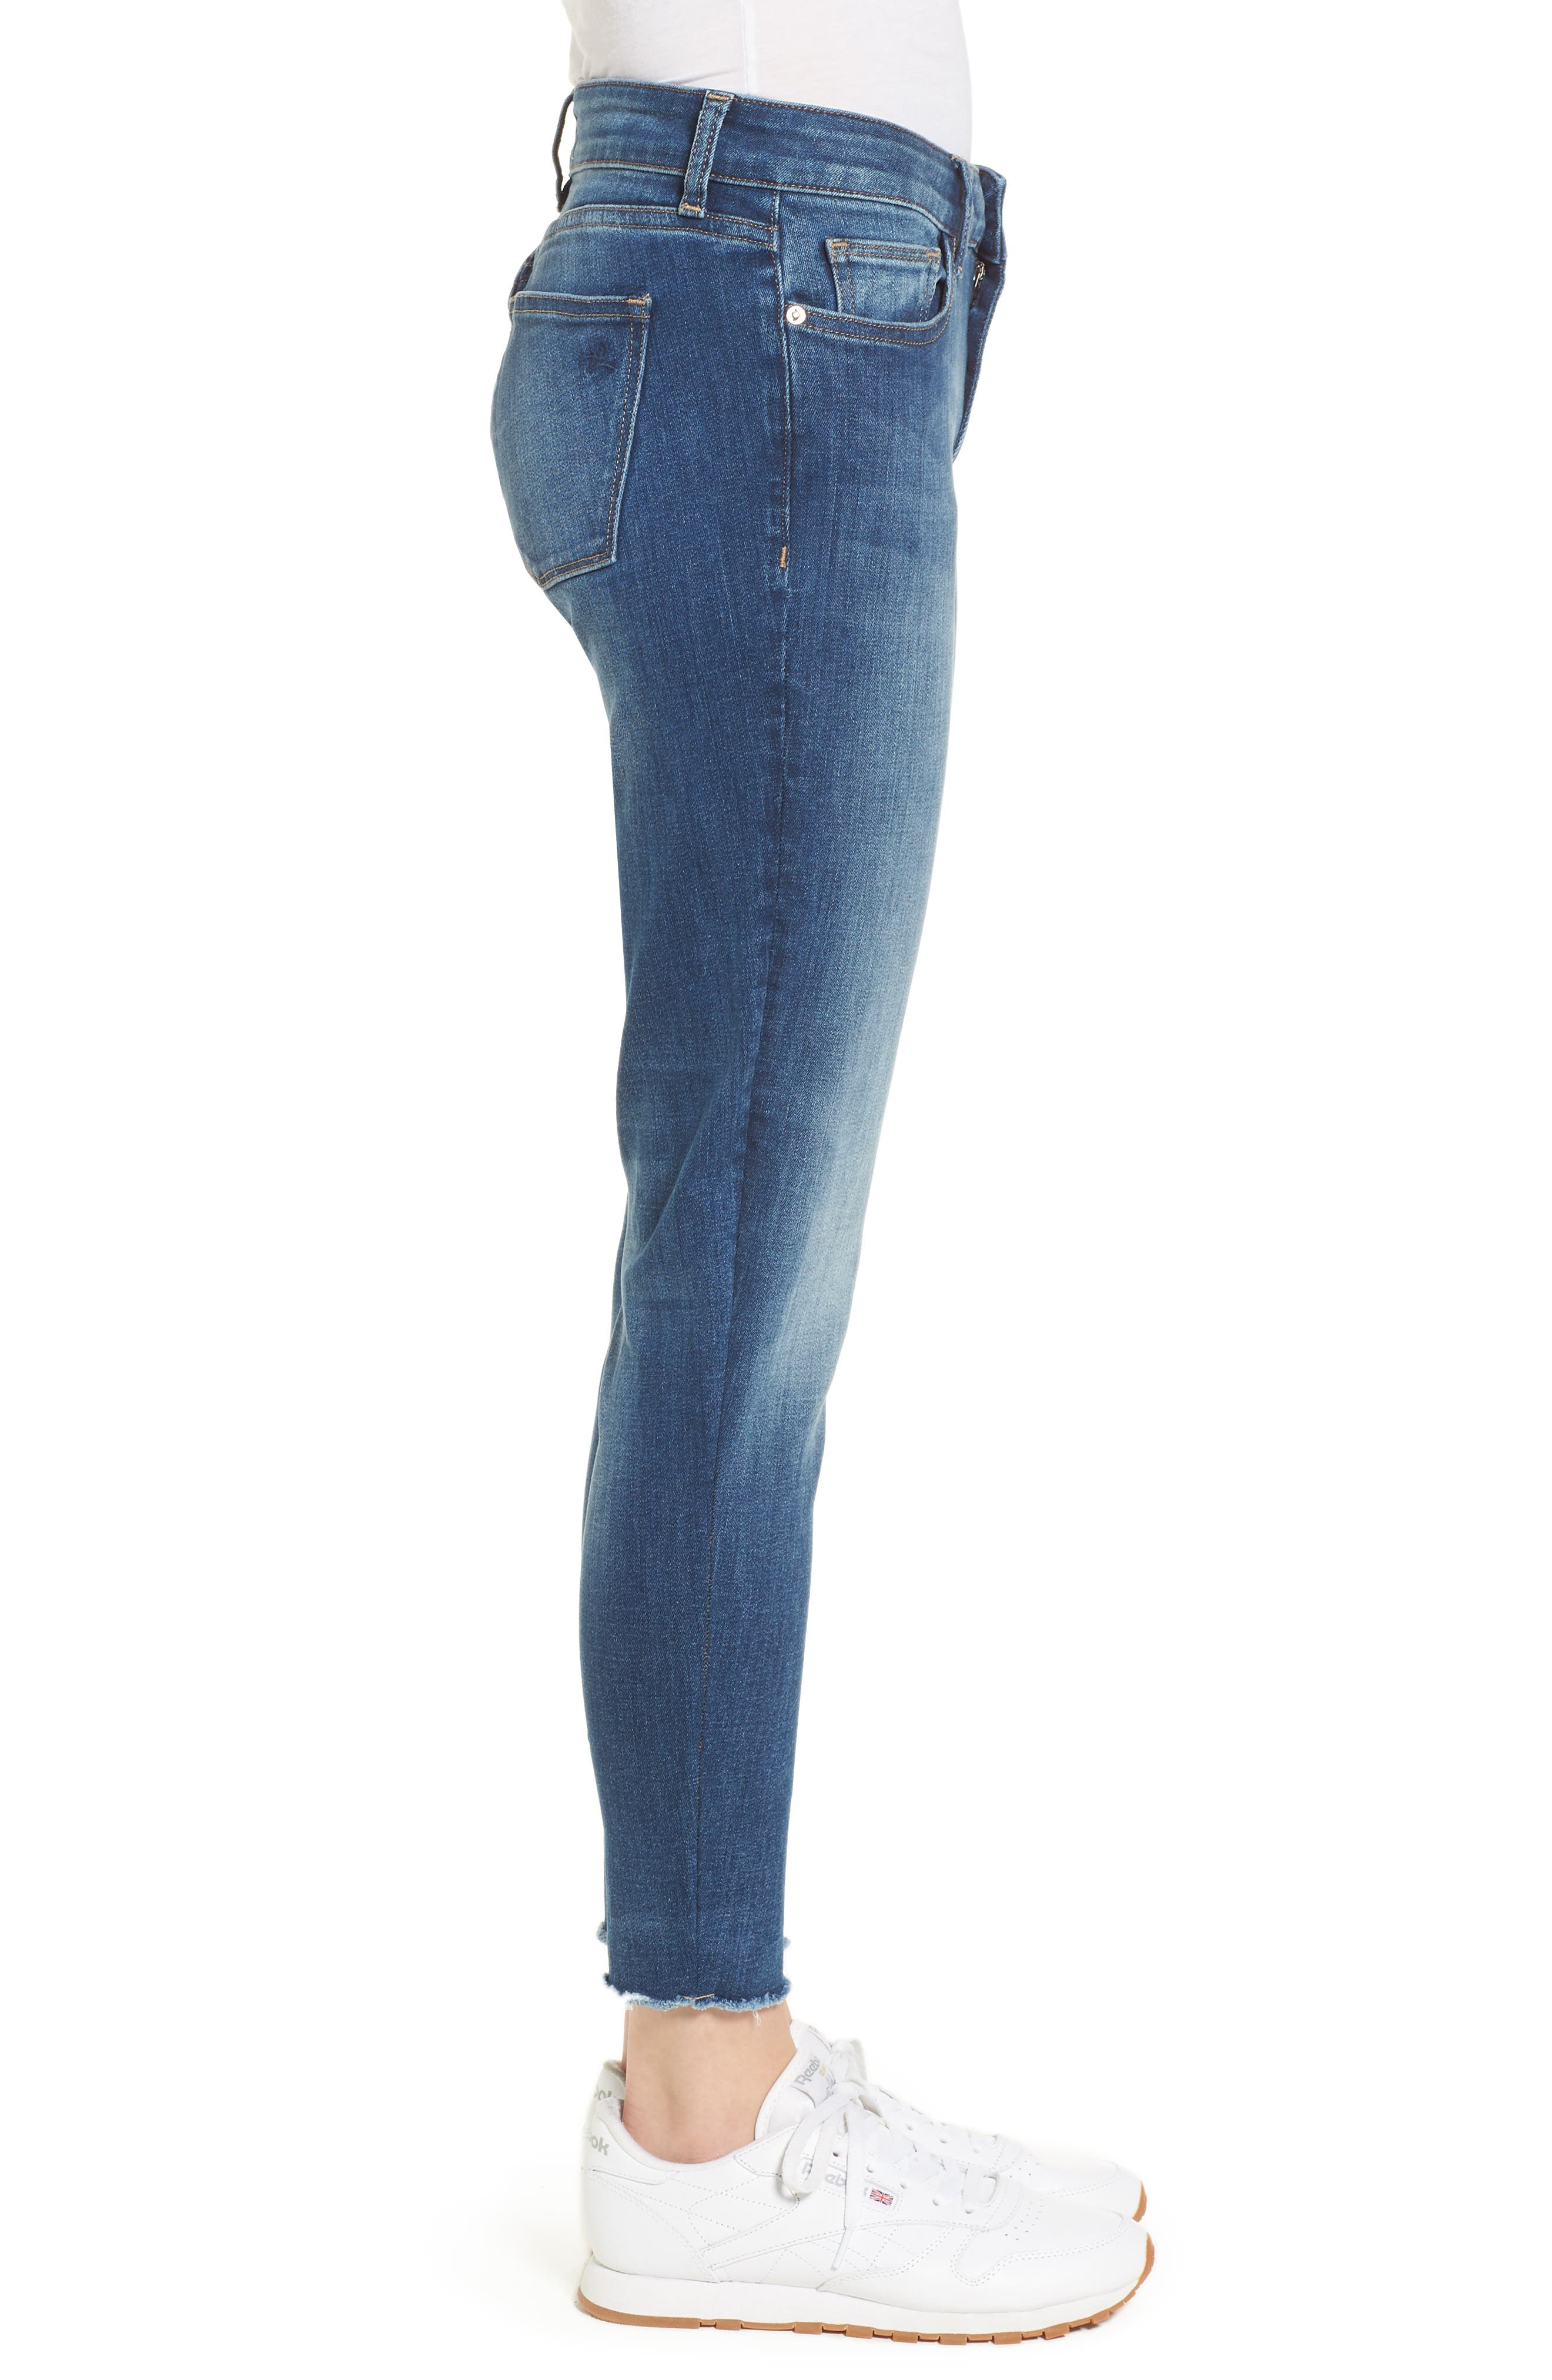 Coco Curvy Ankle Skinny Jeans,                             Alternate thumbnail 3, color,                             426